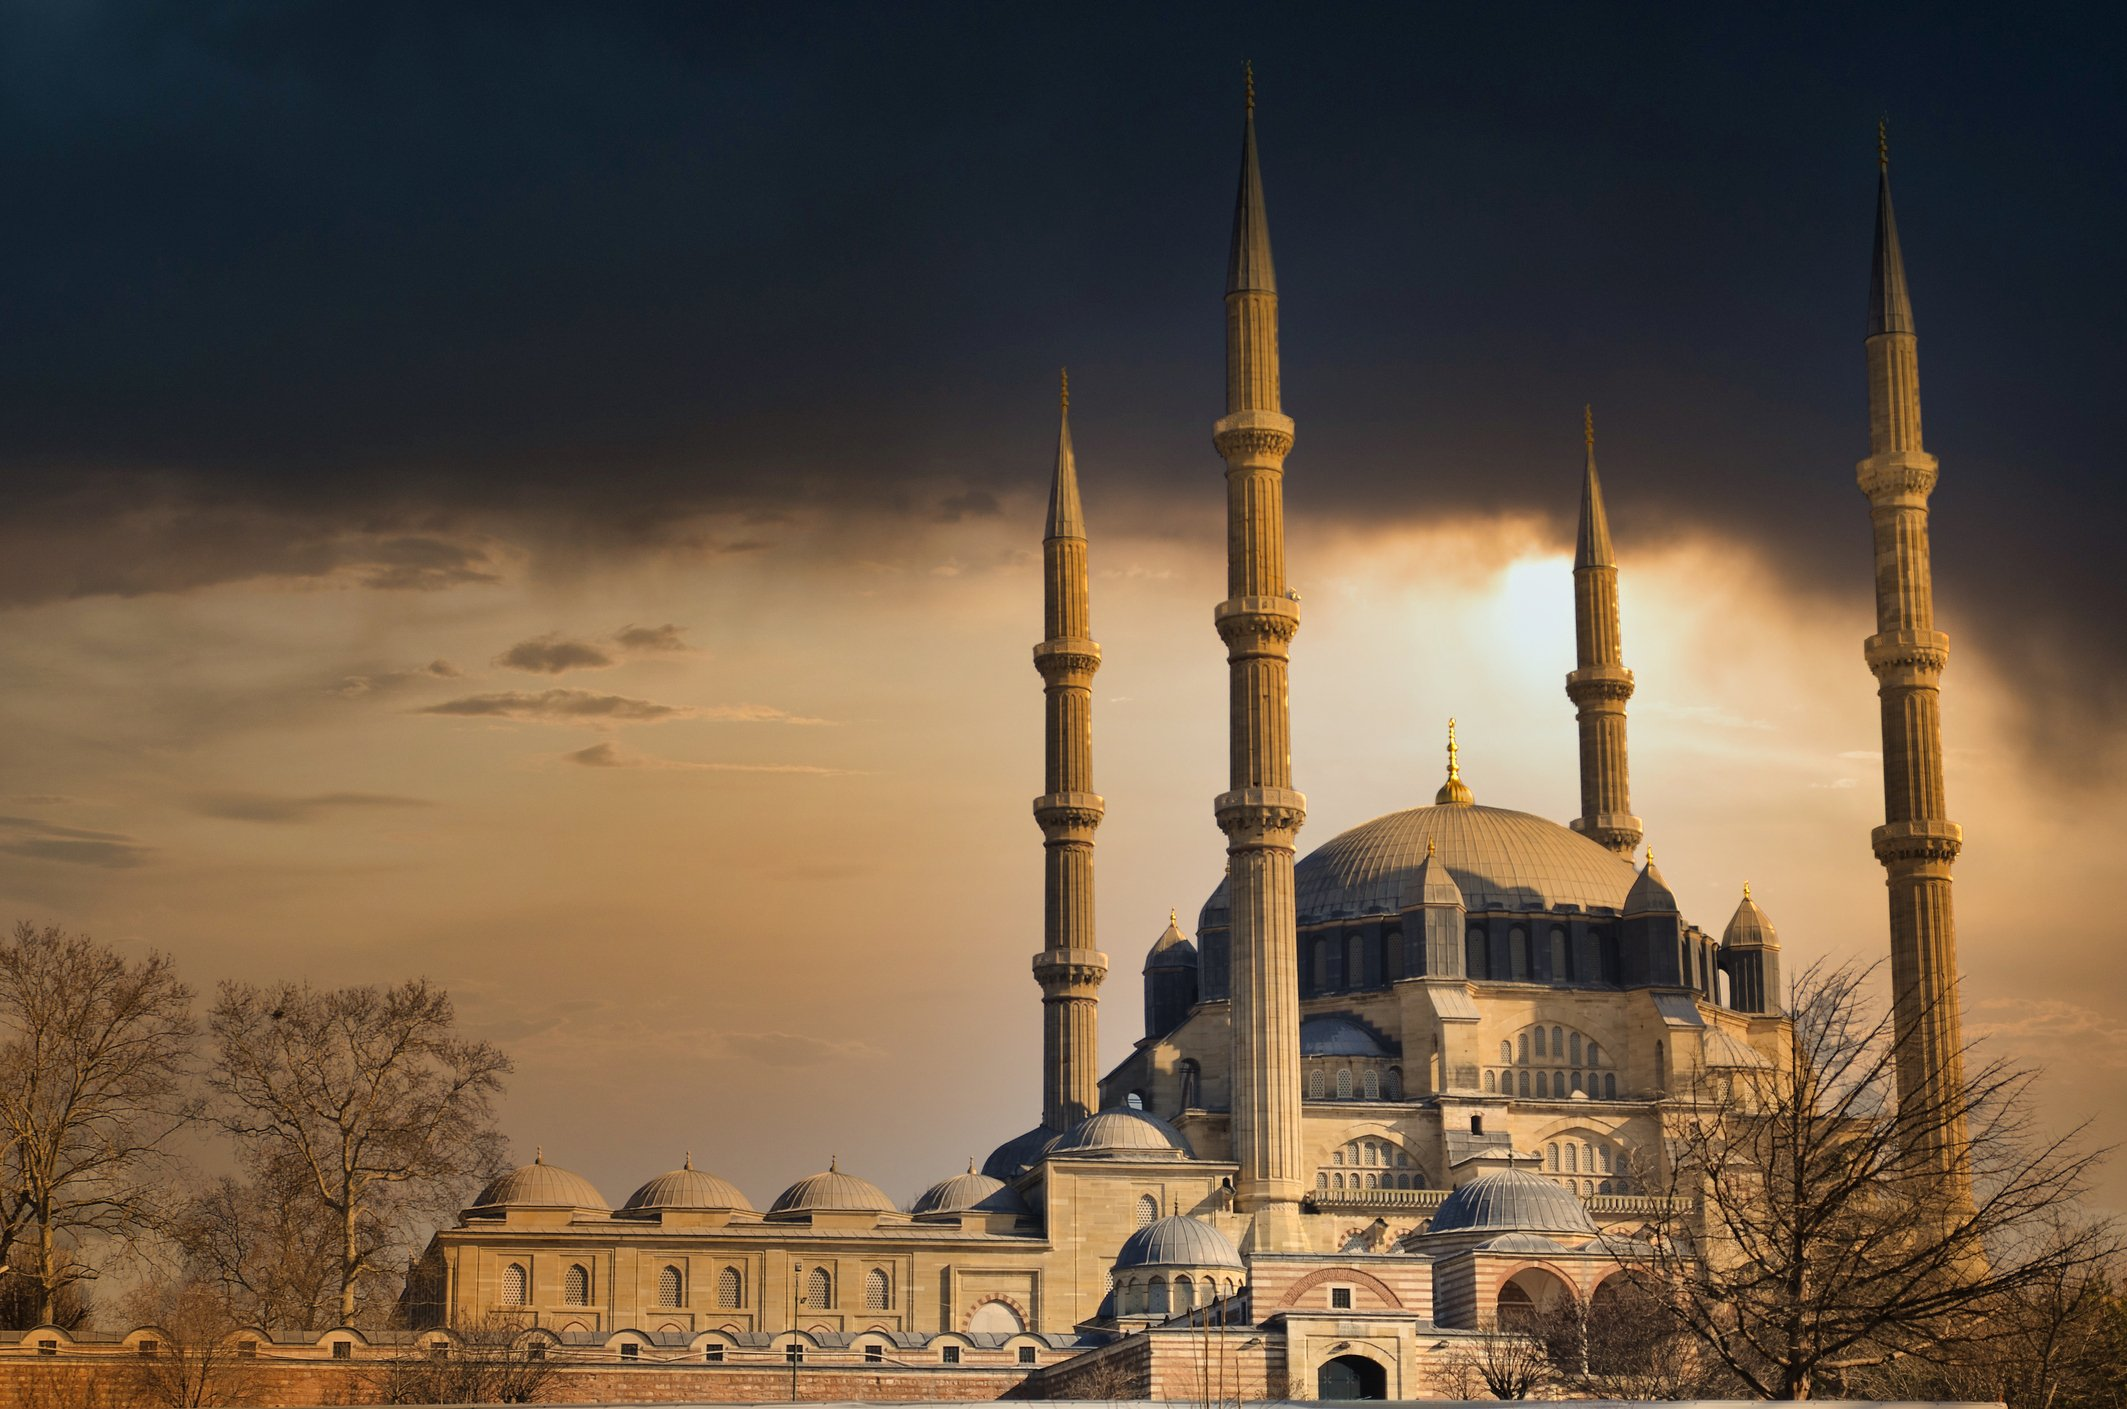 World heritage in Turkey: Selimiye Mosque makes grandeur of the Ottomans  eternal | Daily Sabah